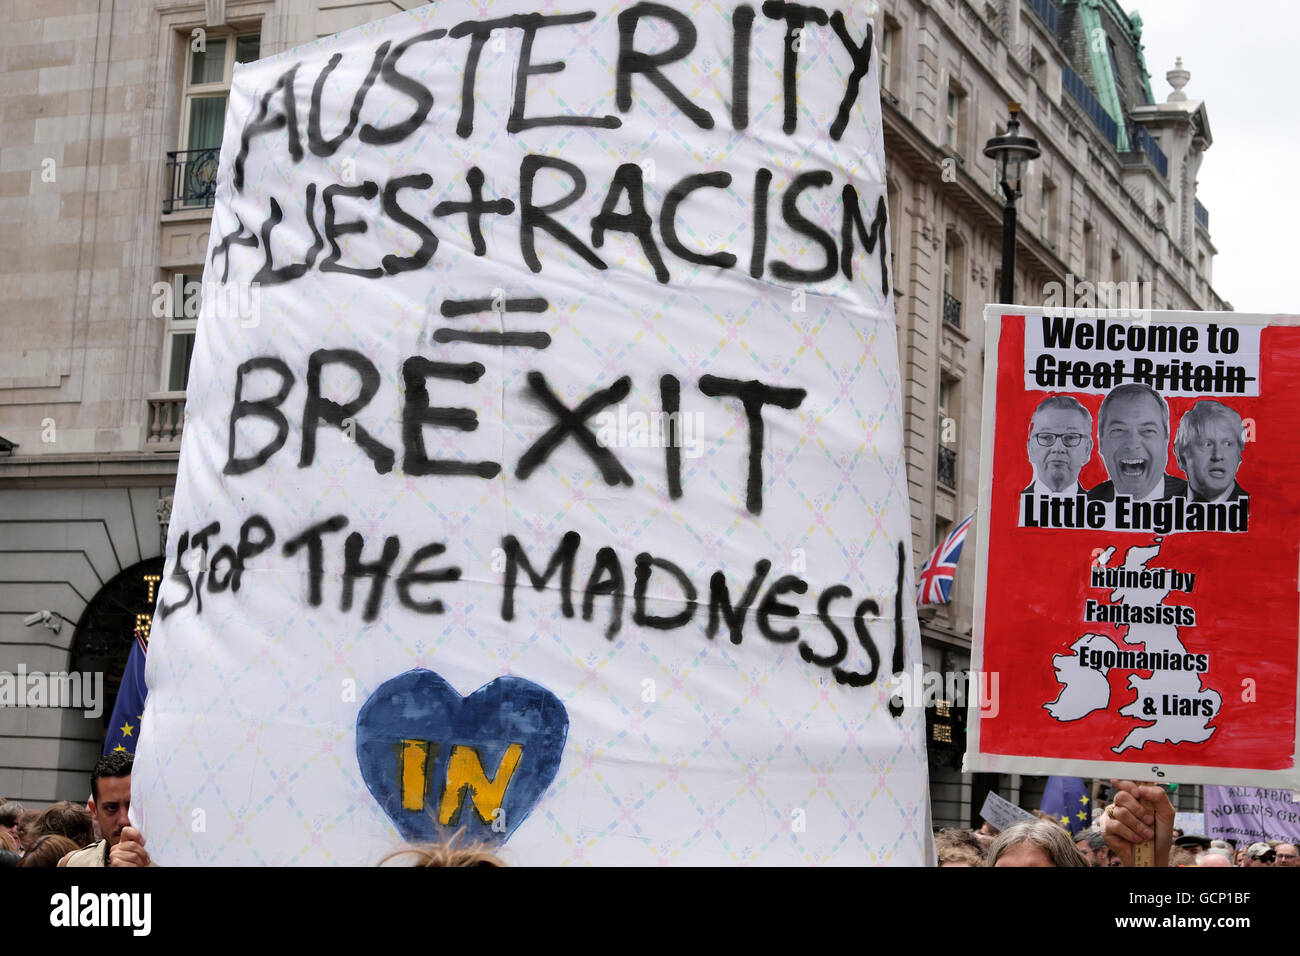 Austerity Lies Racism poster at Anti Brexit demo 'March for Europe' on 2nd July 2016  in London England - Stock Image